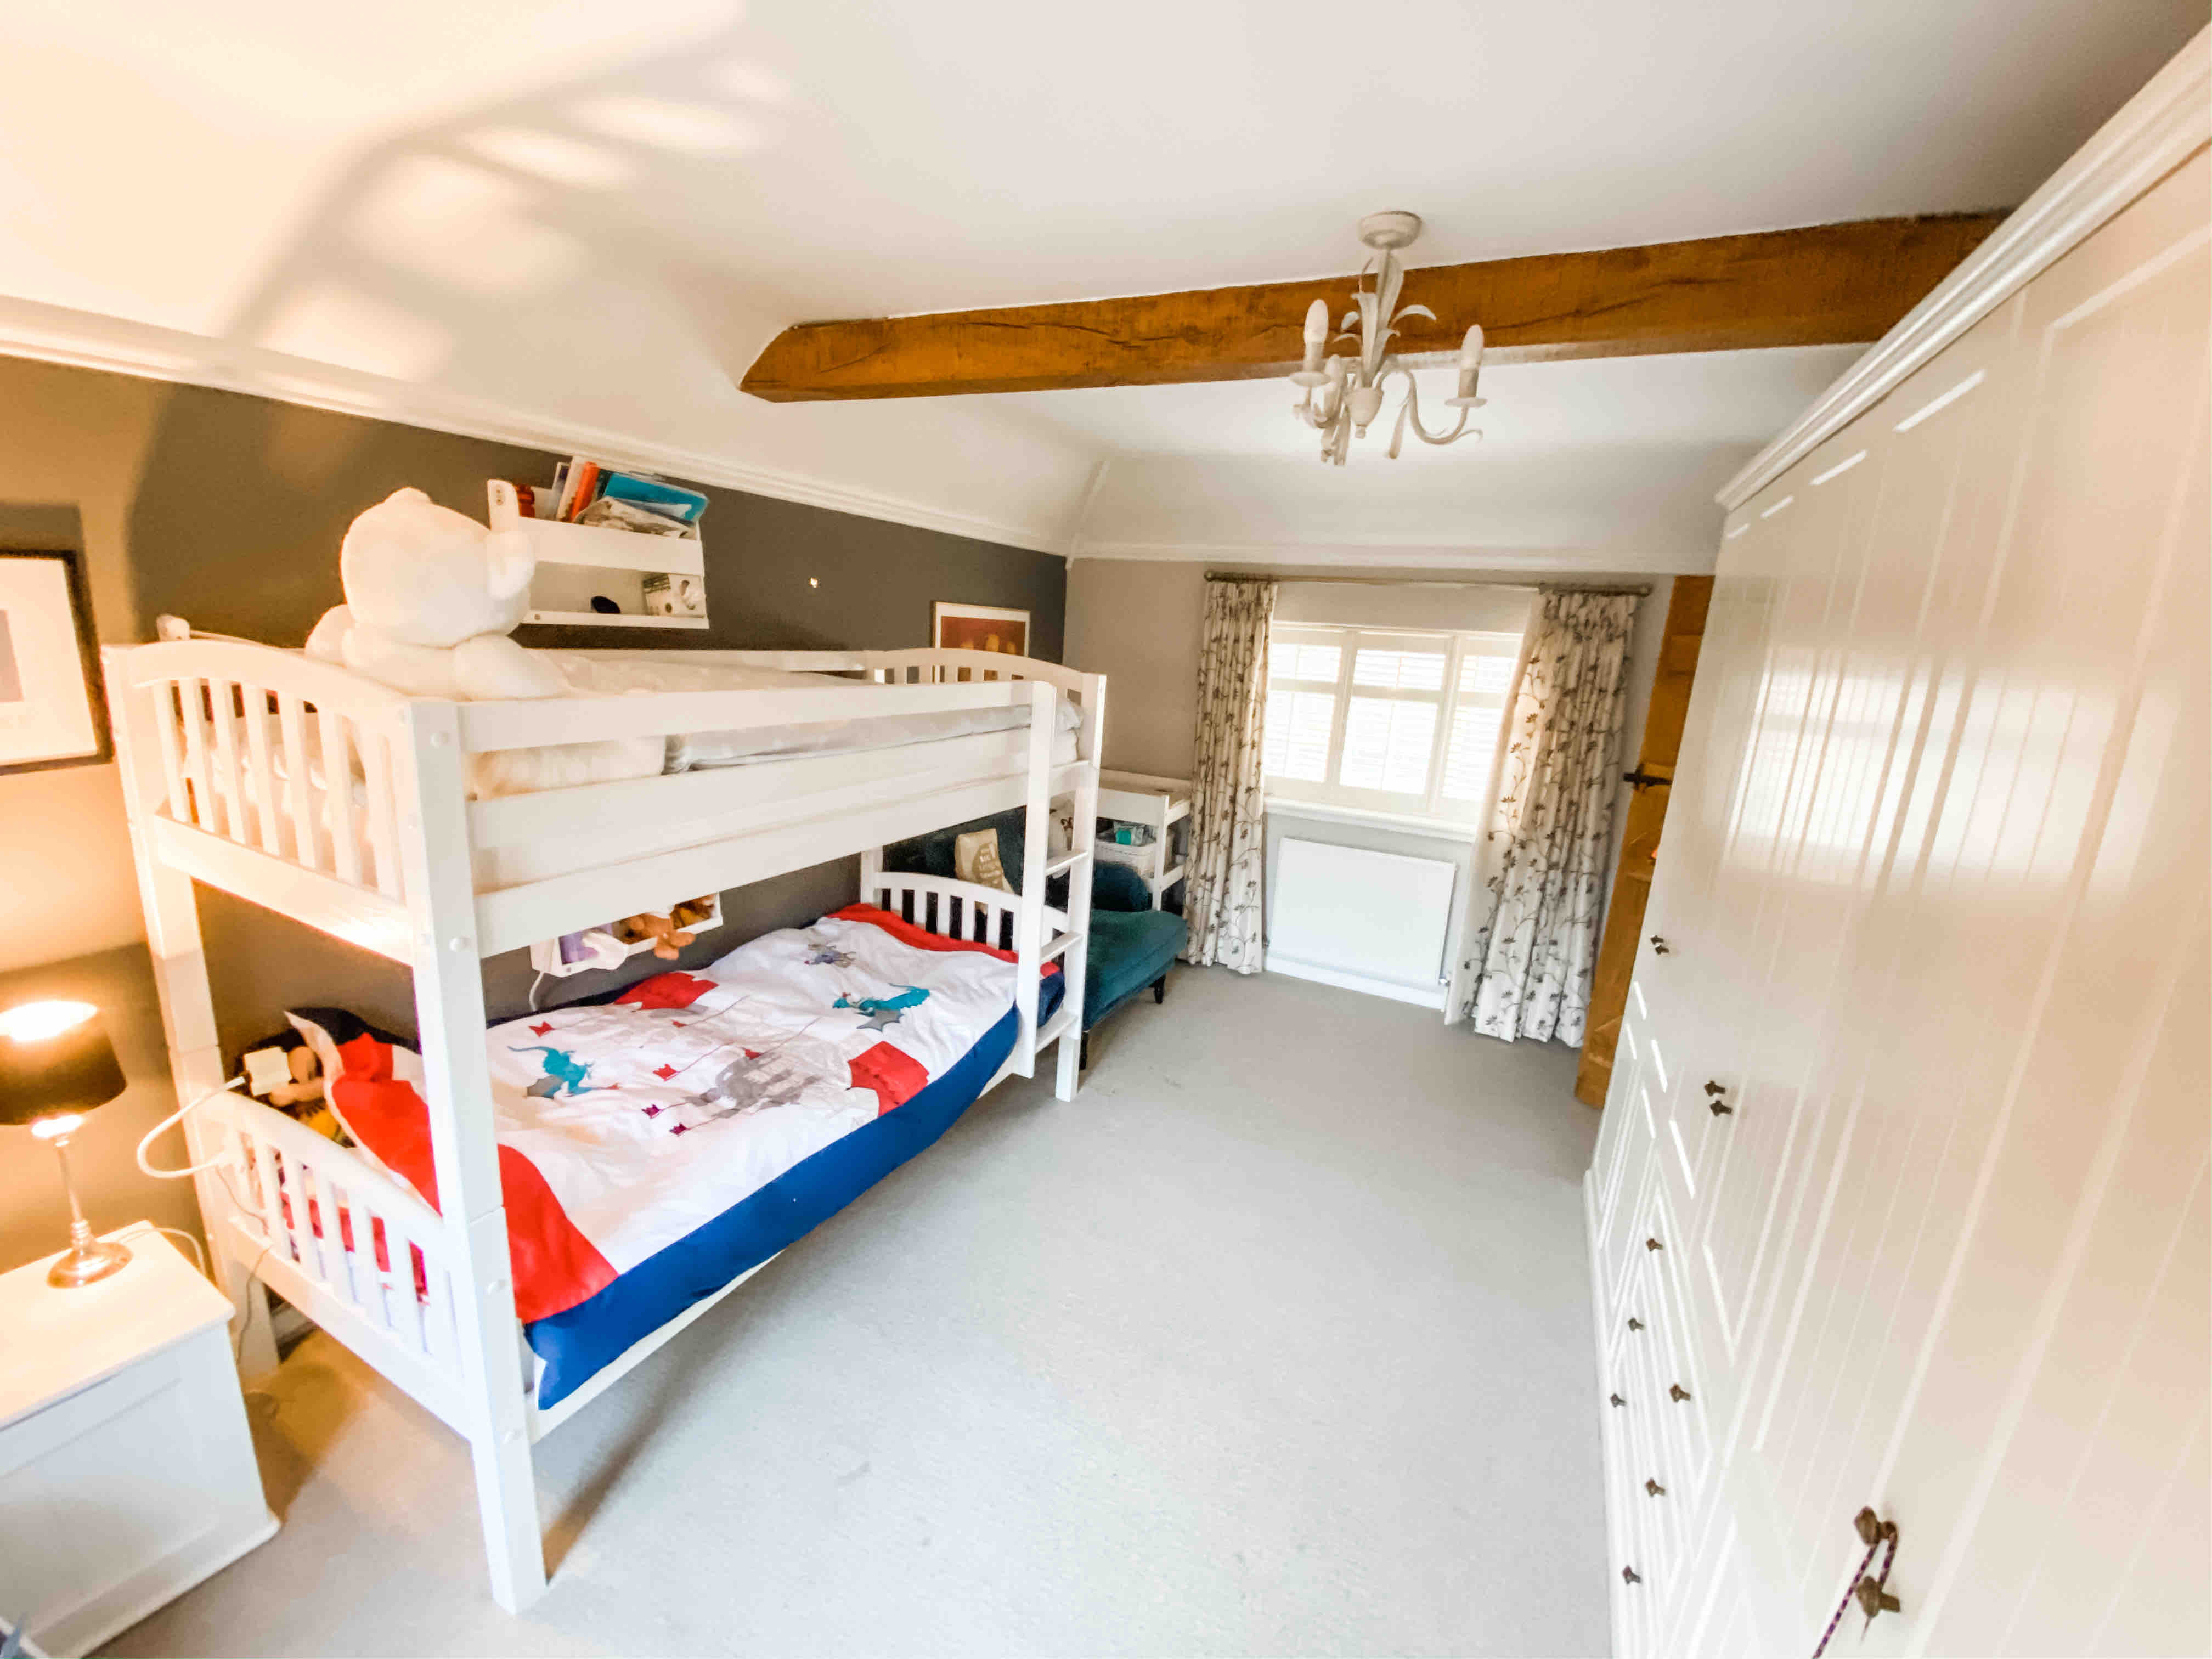 Large family home in the heart of Surrey - Houses for Rent in Guildford,  England, United Kingdom